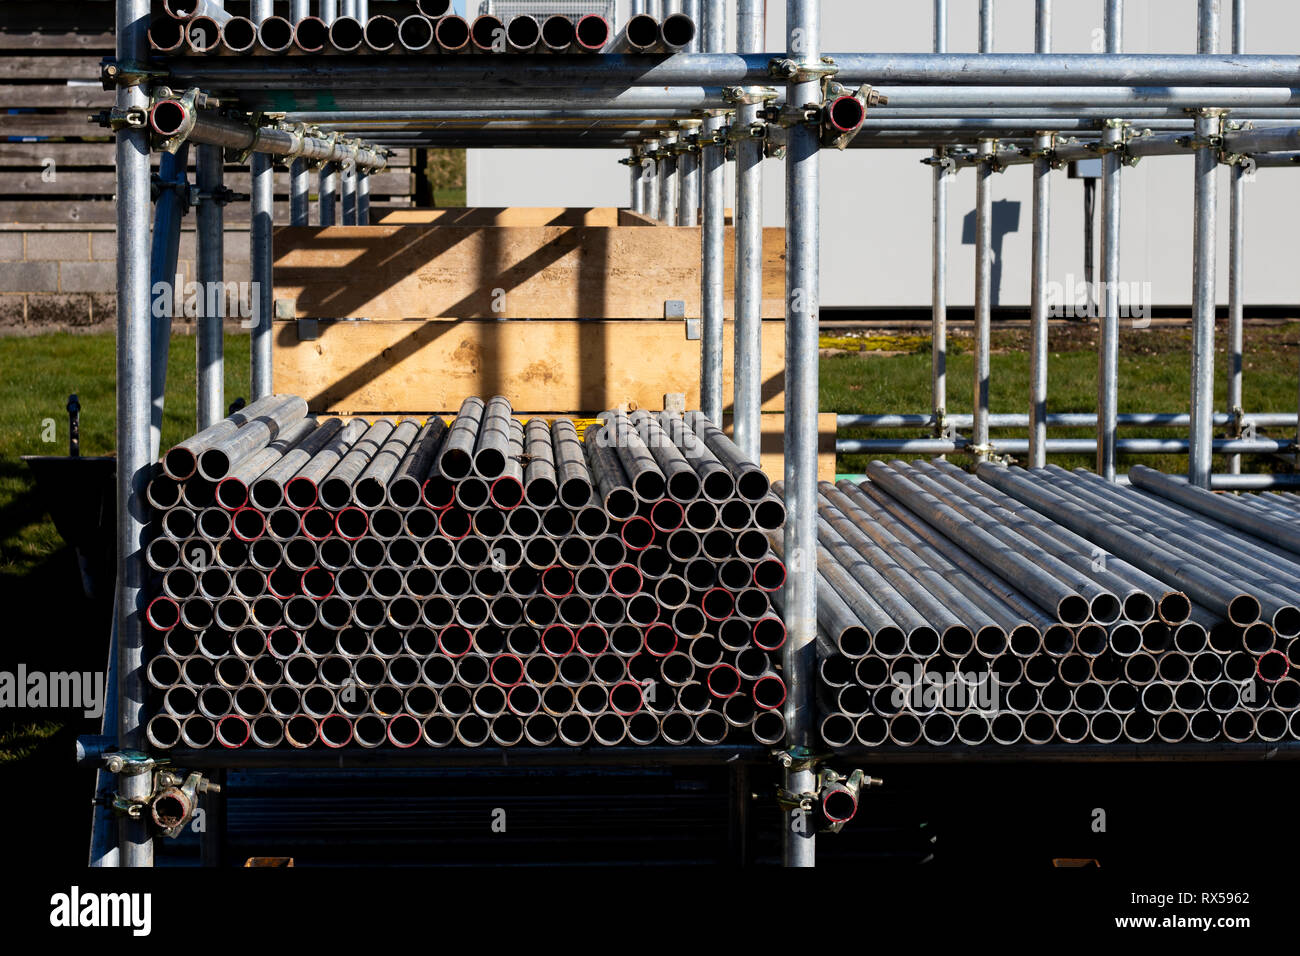 construction site scaffold storage area constructed using scaffolding poles - Stock Image